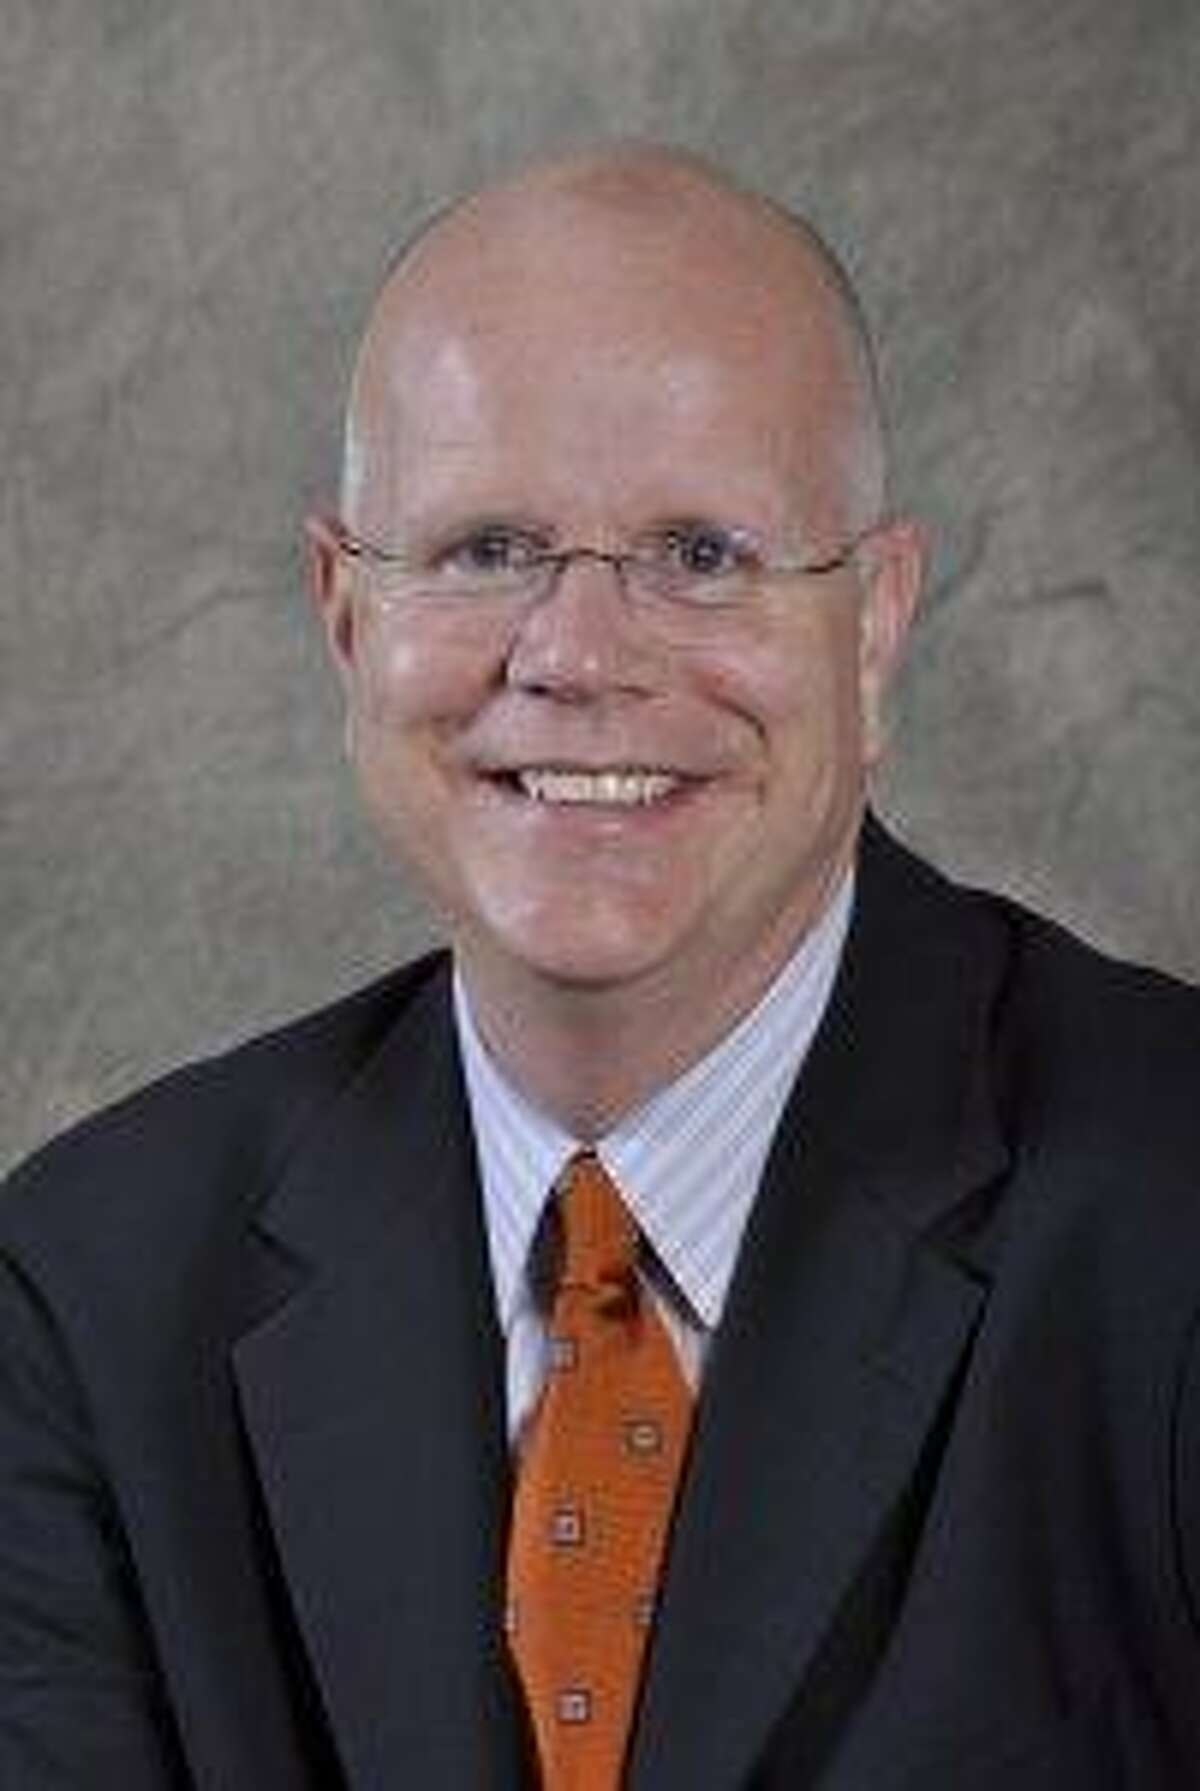 Kevin Lembo. Contributed photo.